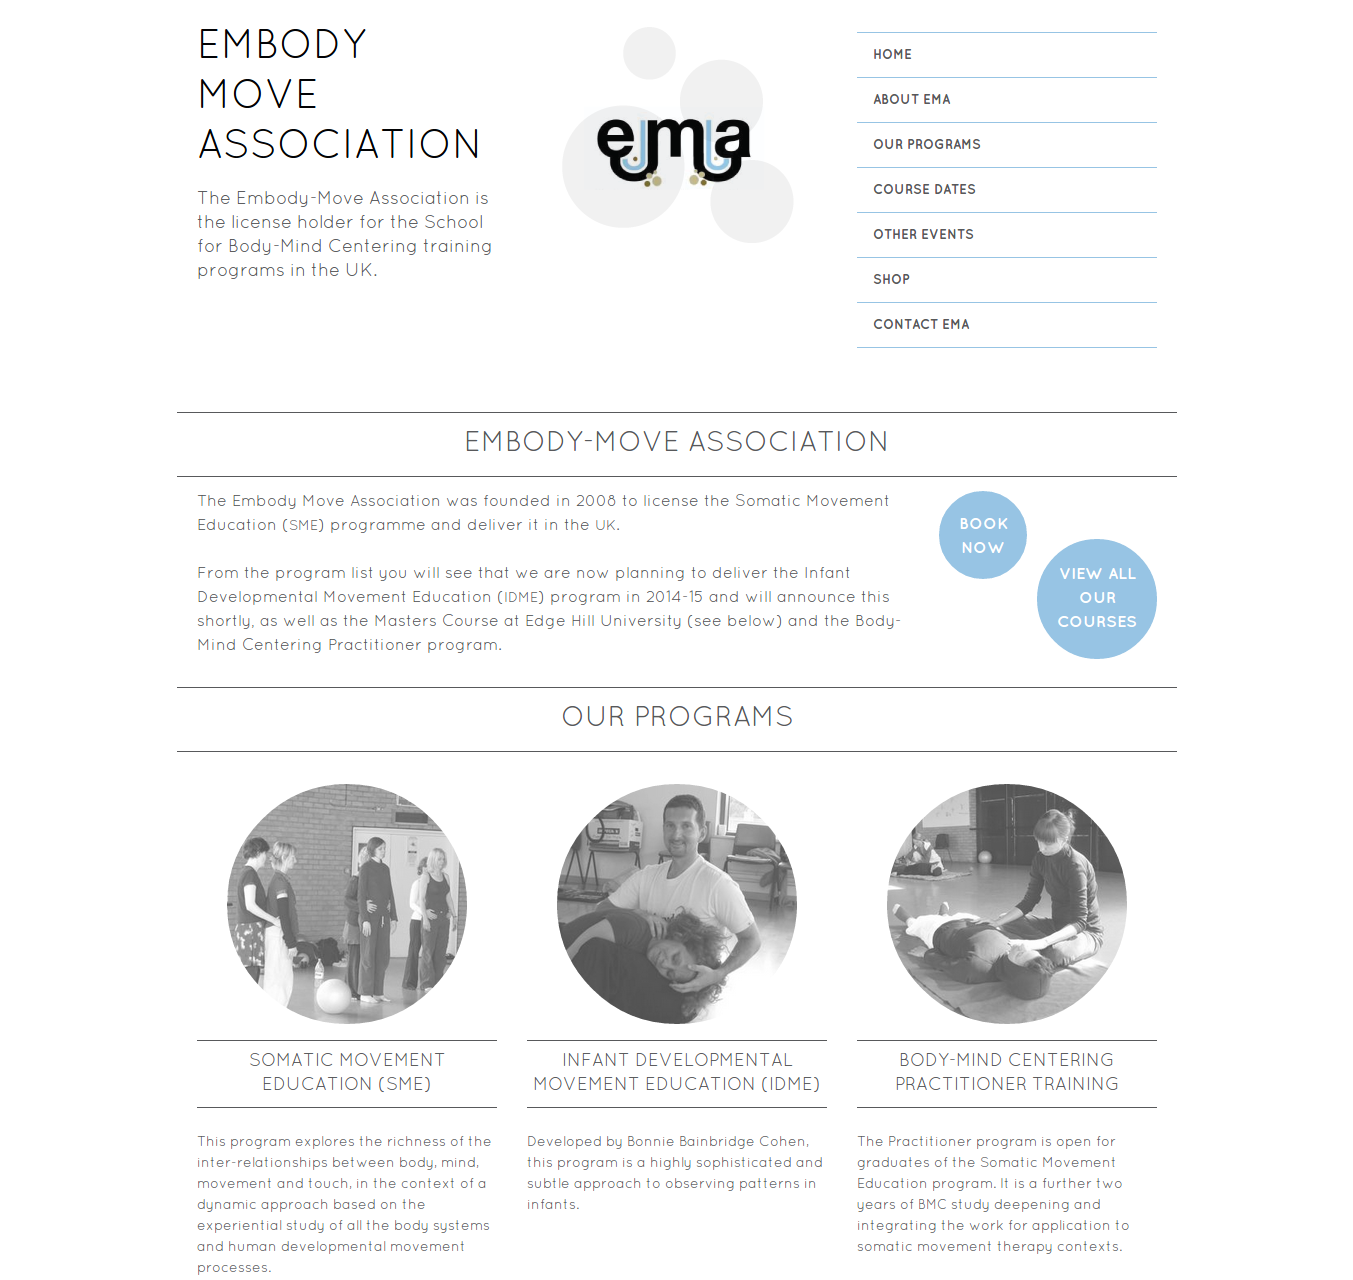 Embody Move Association